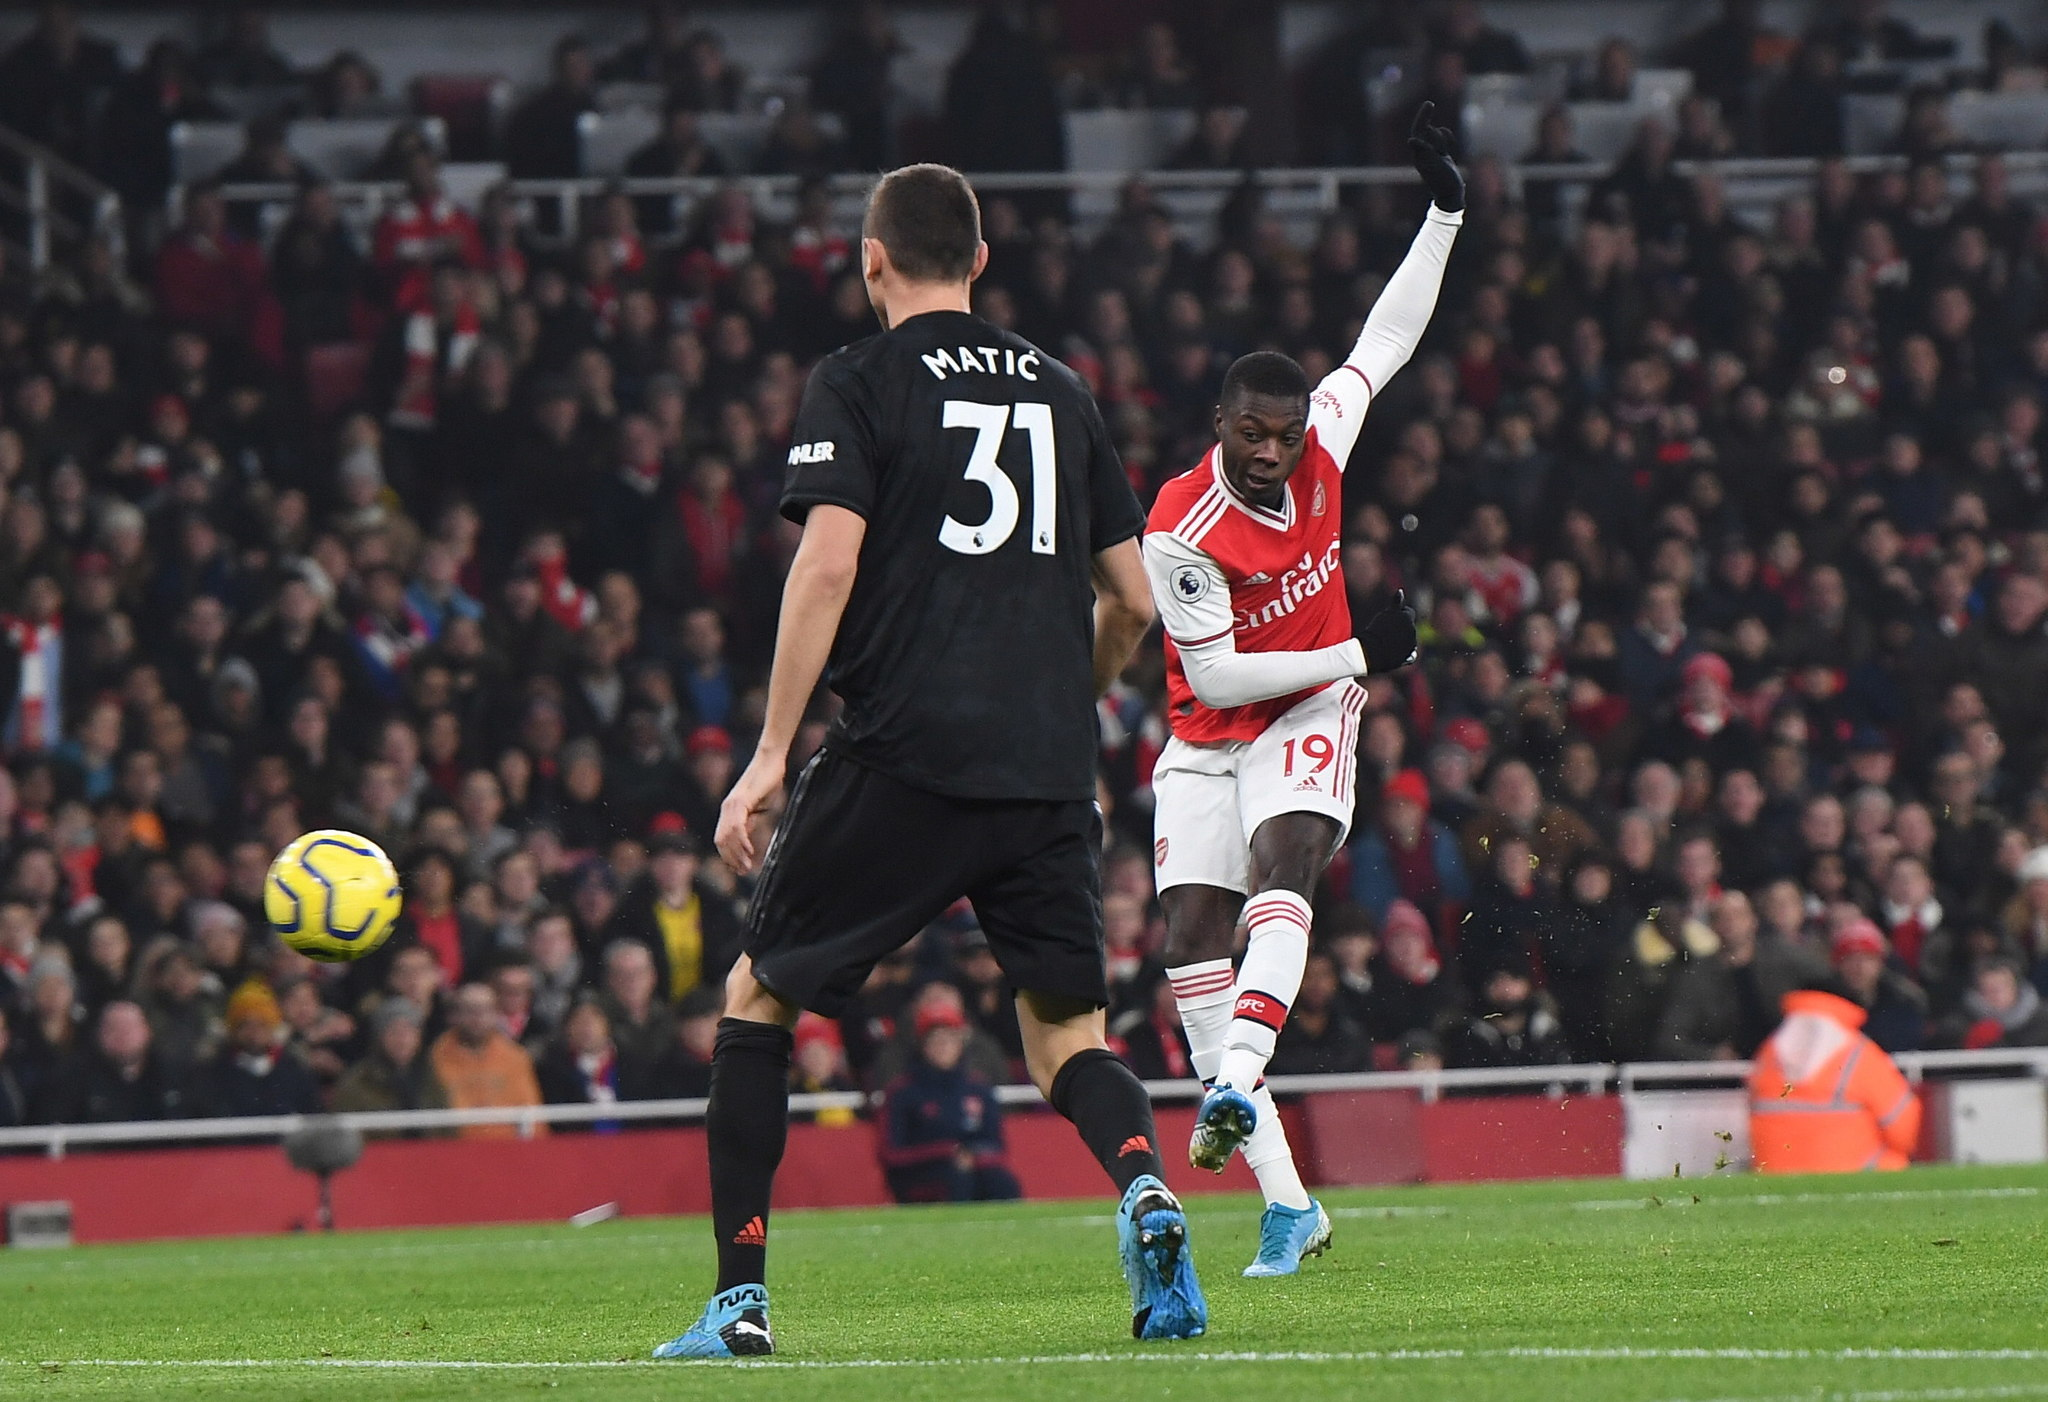 London (United Kingdom), 01/01/2020.- Arsenals Nicolas <HIT>Pepe</HIT> (R) scores a goal during the English Premier league soccer match between Arsenal and Manchester United held at the Emirates stadium in London, Britain, 01 January 2020. (Reino Unido, Londres) EFE/EPA/ANDY RAIN EDITORIAL USE ONLY. No use with unauthorized audio, video, data, fixture lists, club/league logos or live services. Online in-match use limited to 120 images, no video emulation. No use in betting, games or single club/league/player publications